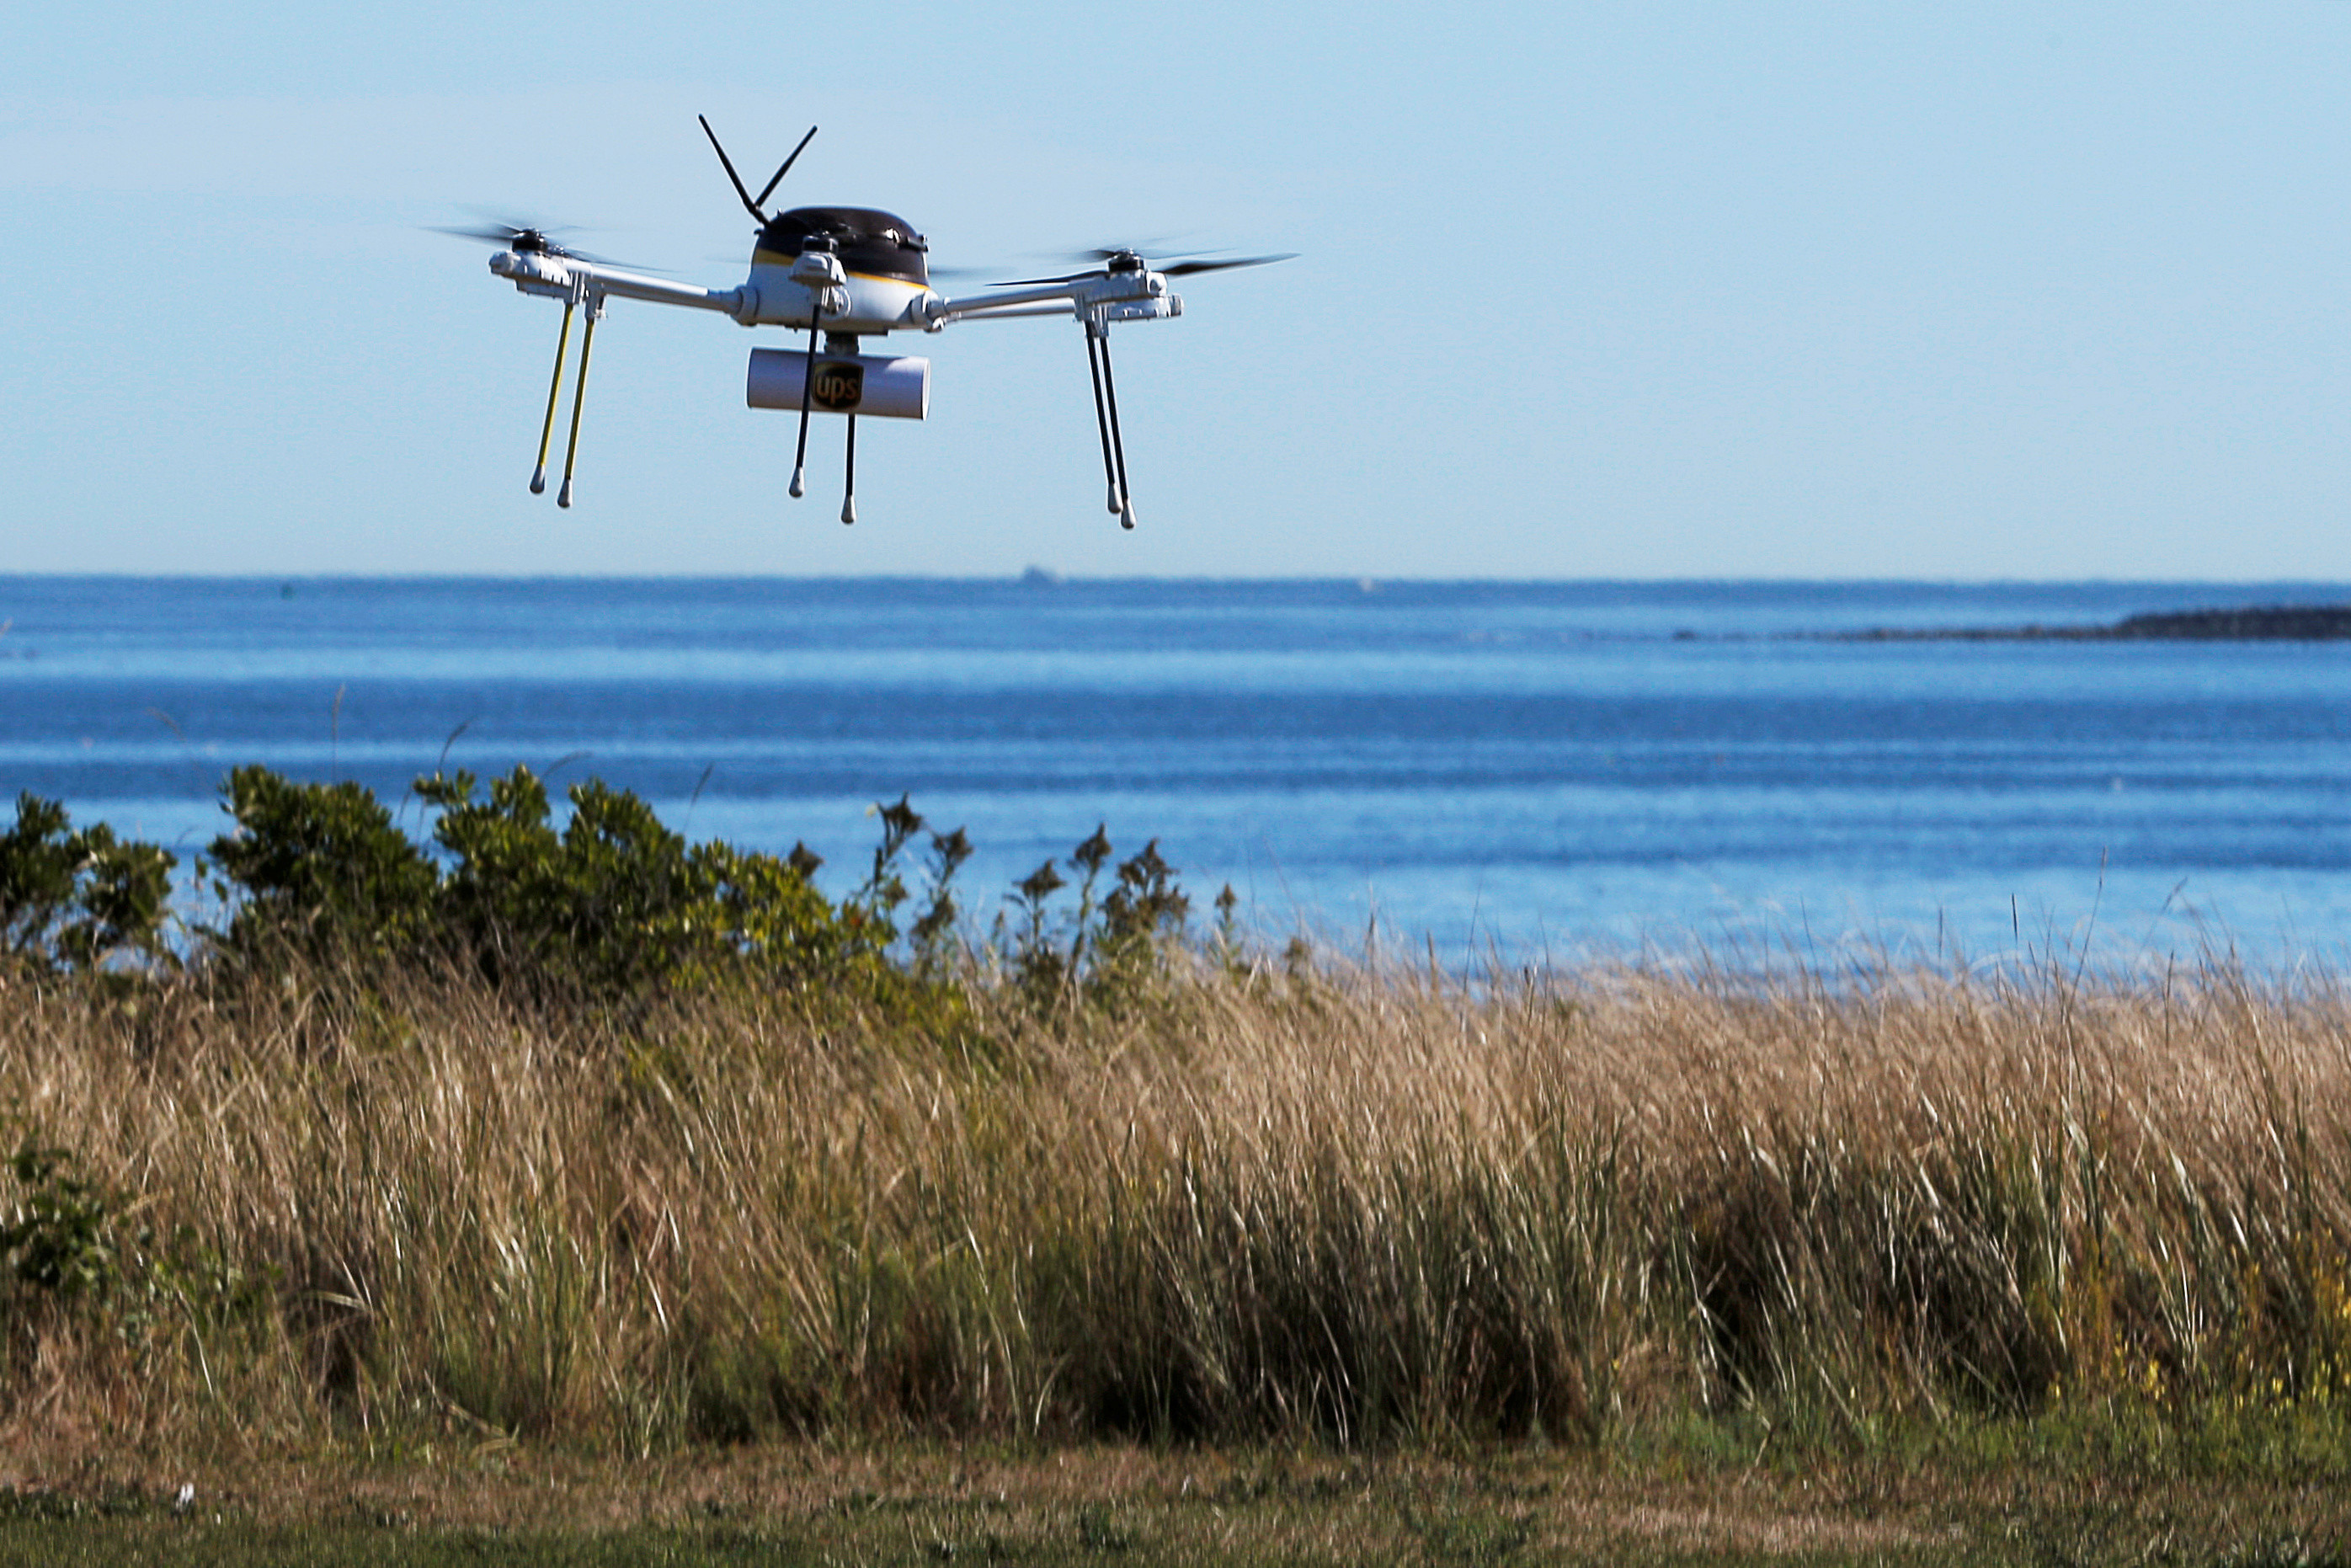 A drone, made by CyPhy Works, delivers a UPS package on Children's Island off the coast of Beverly, Massachusetts, U.S. September 22, 2016, during UPS's demonstration of a drone making a commercial delivery of a package to a remote or difficult-to-access location. Picture taken September 22, 2016. REUTERS/Brian Snyder  - S1BEUCYKOTAA